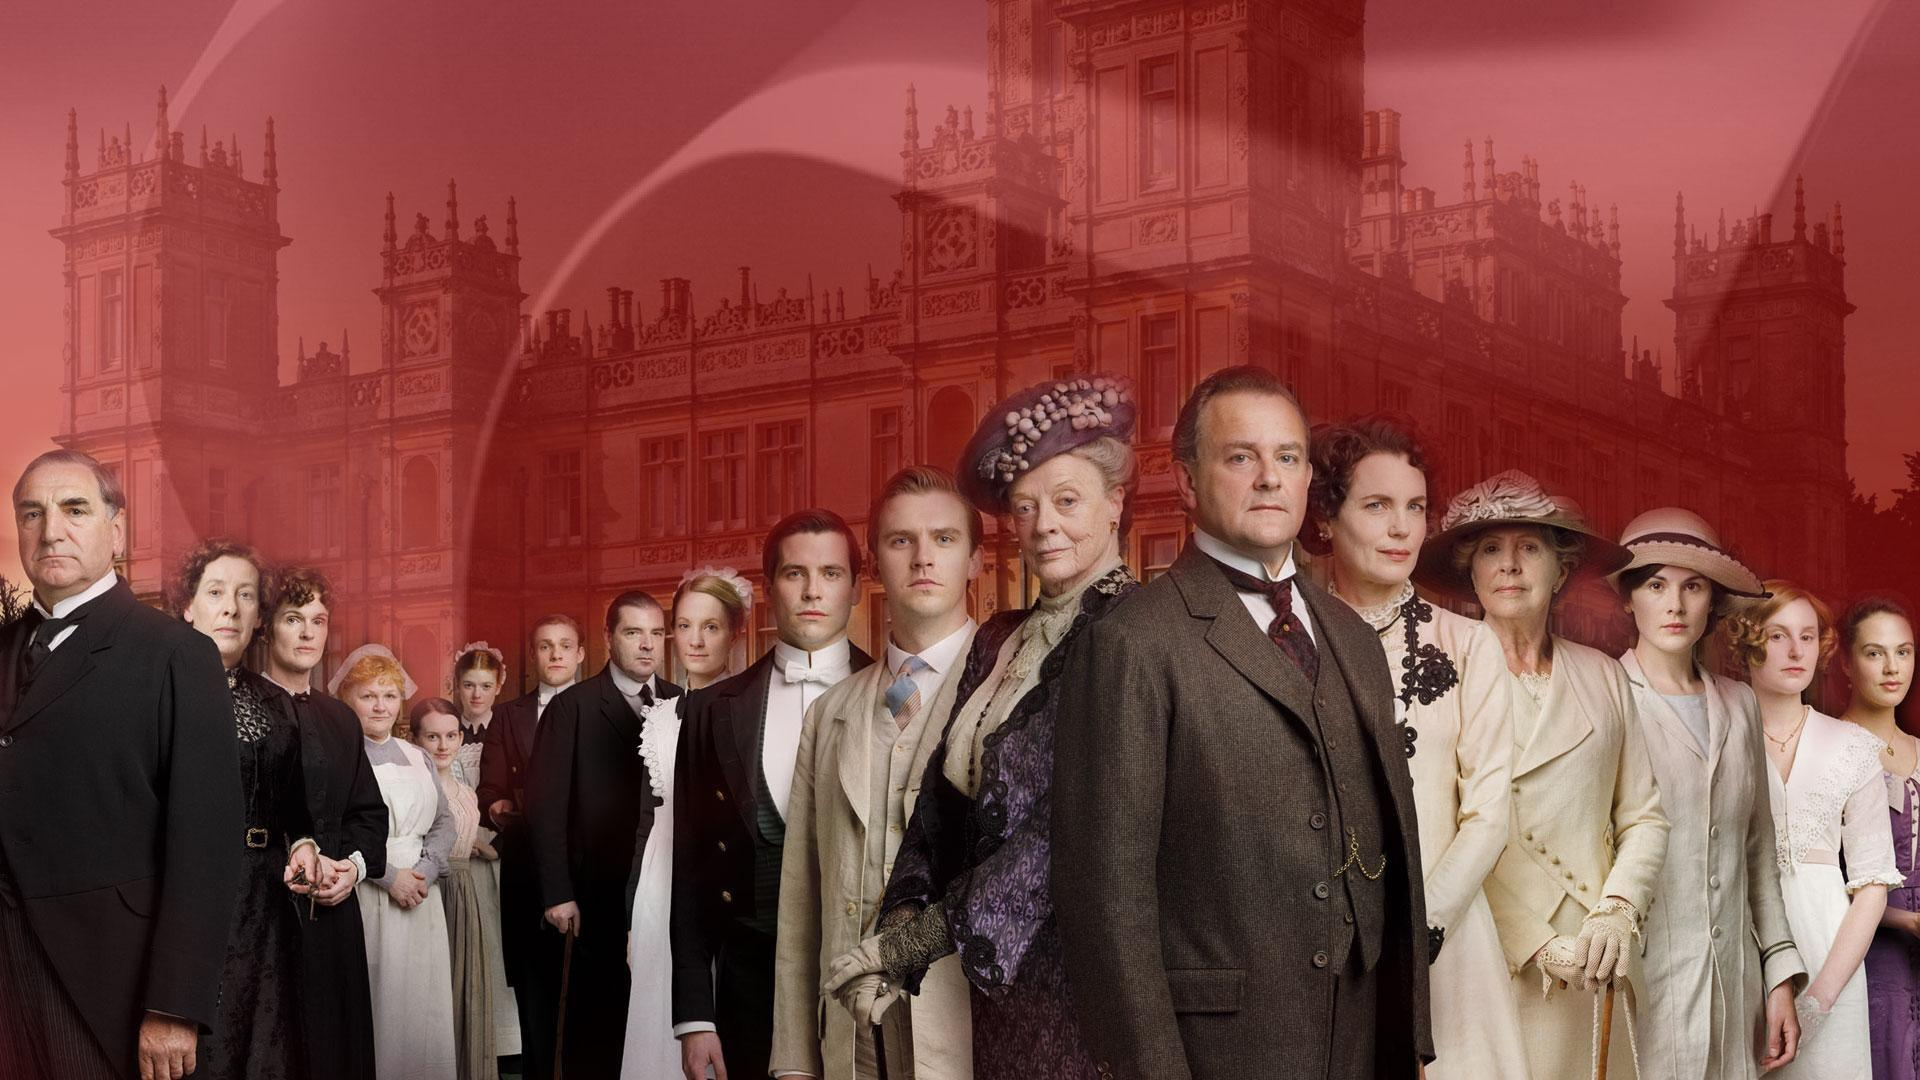 Downton abbey on masterpiece preview twin cities pbs for Downton abbey tour tickets